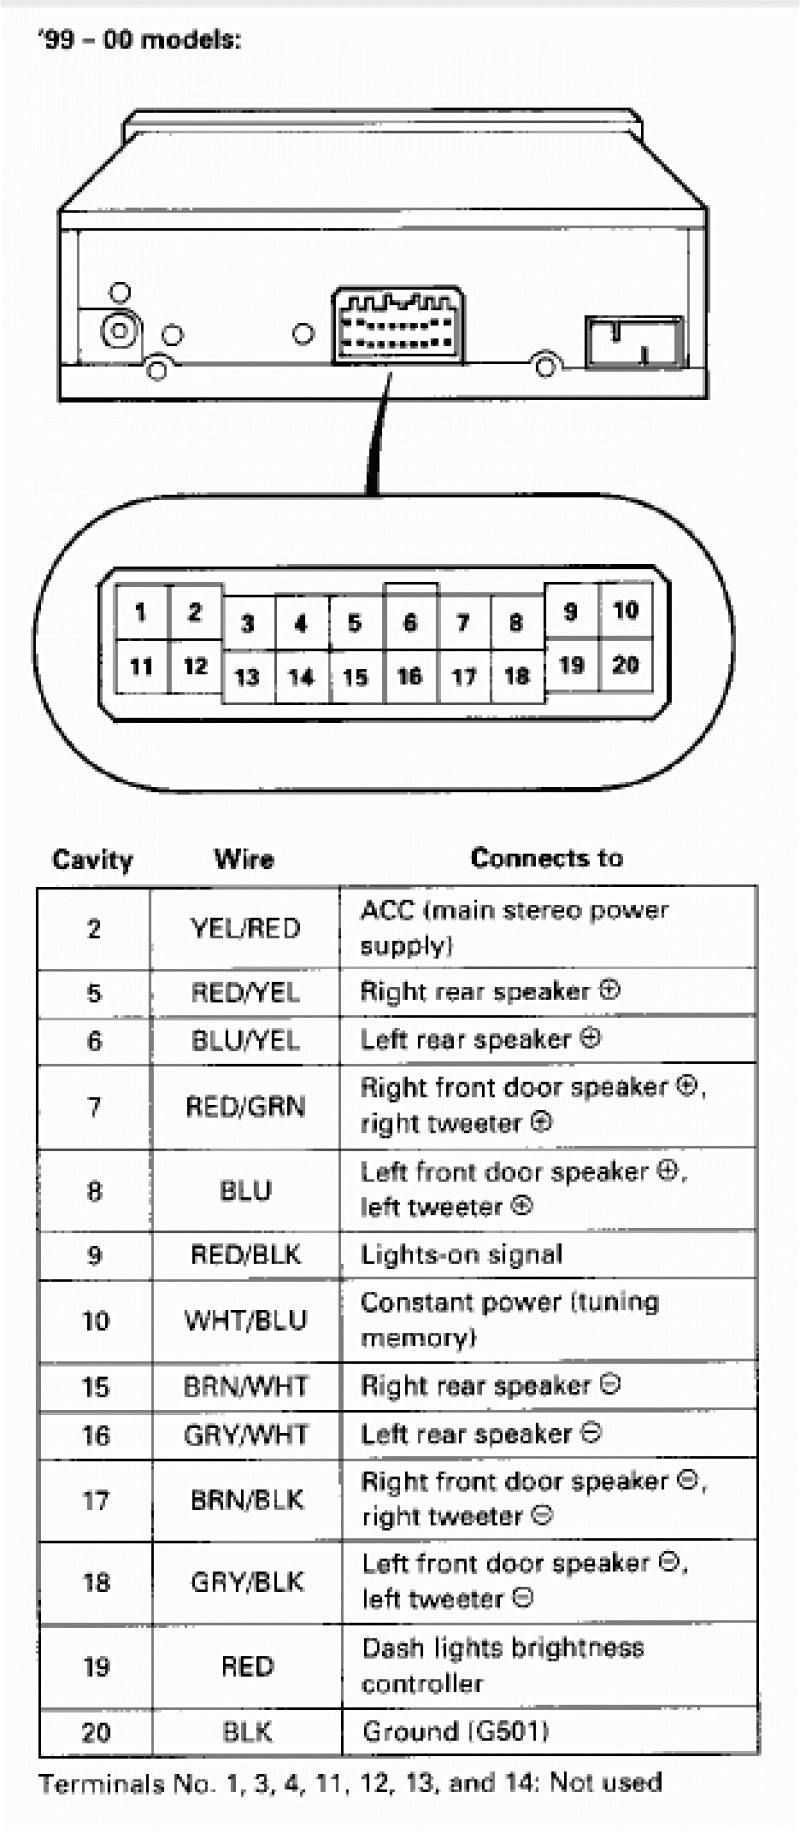 2004 Pontiac Vibe Stereo Wiring Diagram Rosemount 4 Wire Rtd Pin By K Brown On 1999 Honda Civic Radio | Pinterest Civic, And